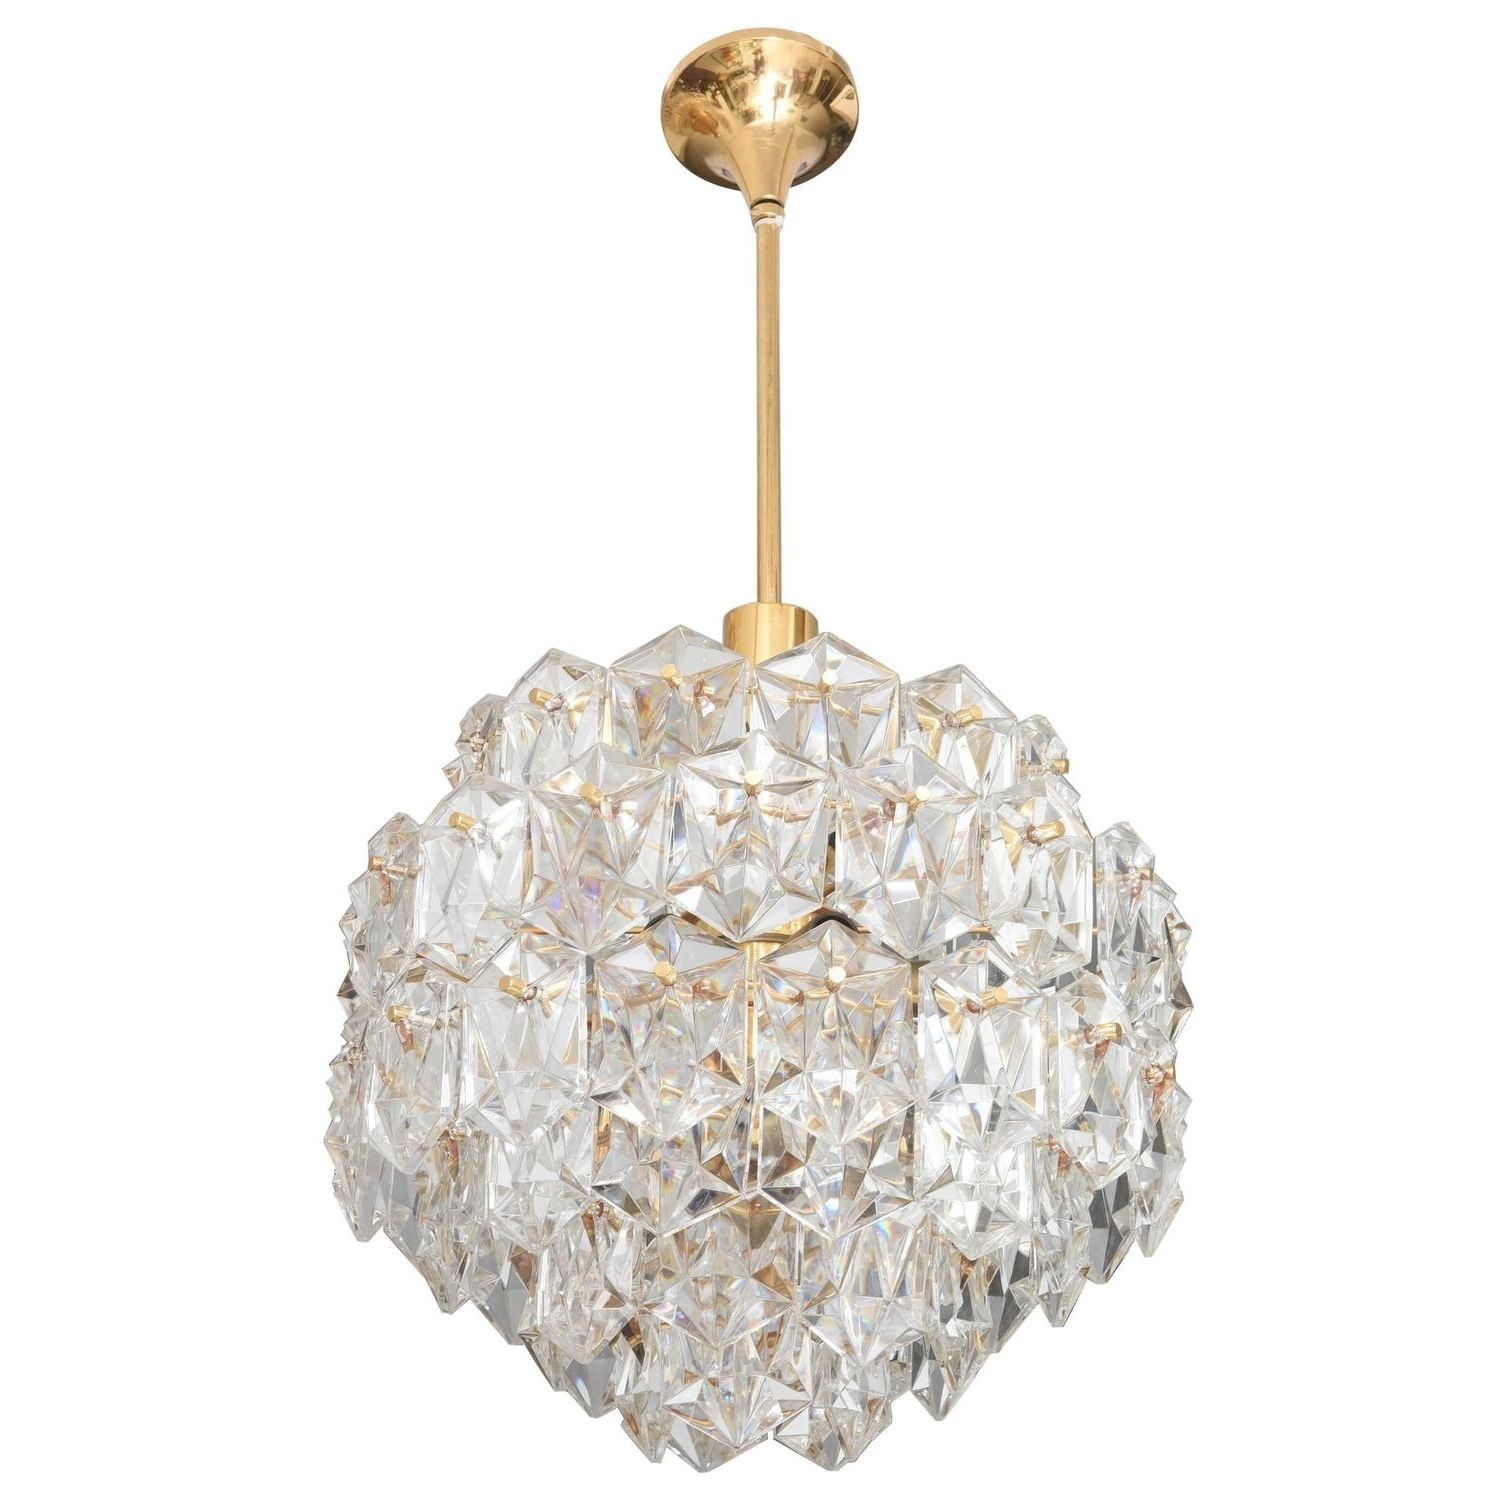 Gold Modern Chandelier Regarding Most Up To Date Mid Century Modern Chandelier, Gold Plated With Molded Crystals (Gallery 3 of 20)